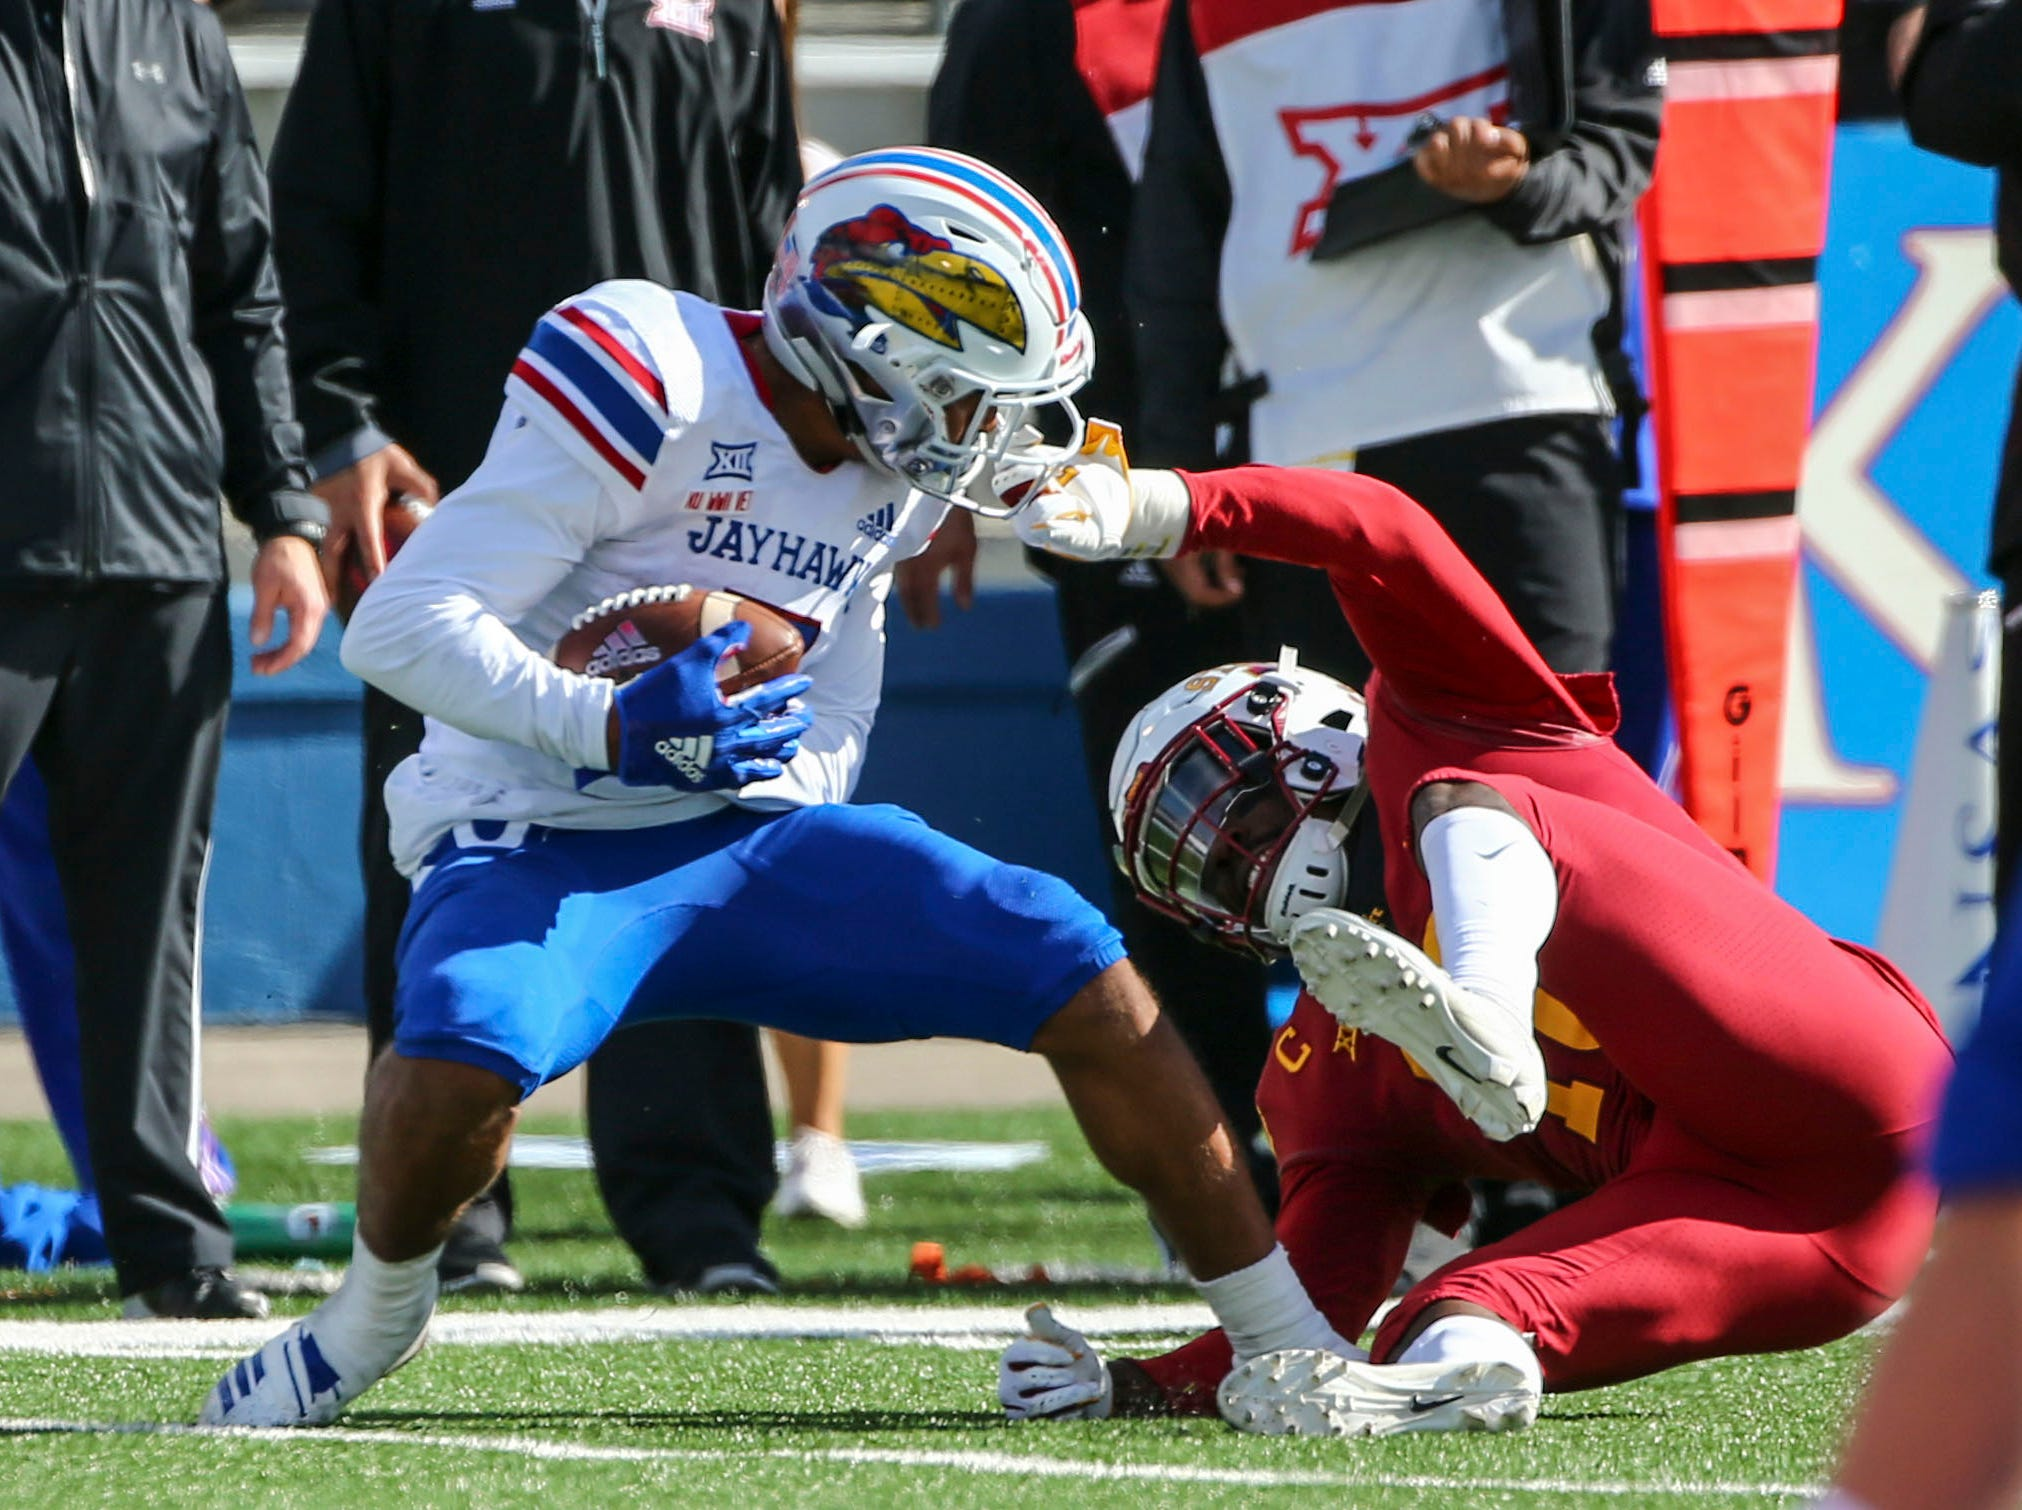 Nov 3, 2018; Lawrence, KS, USA; Kansas Jayhawks wide receiver Stephon Robinson (5) is grabbed by his facemask by Iowa State Cyclones defensive back Brian Peavy (10) in the second half at Memorial Stadium.